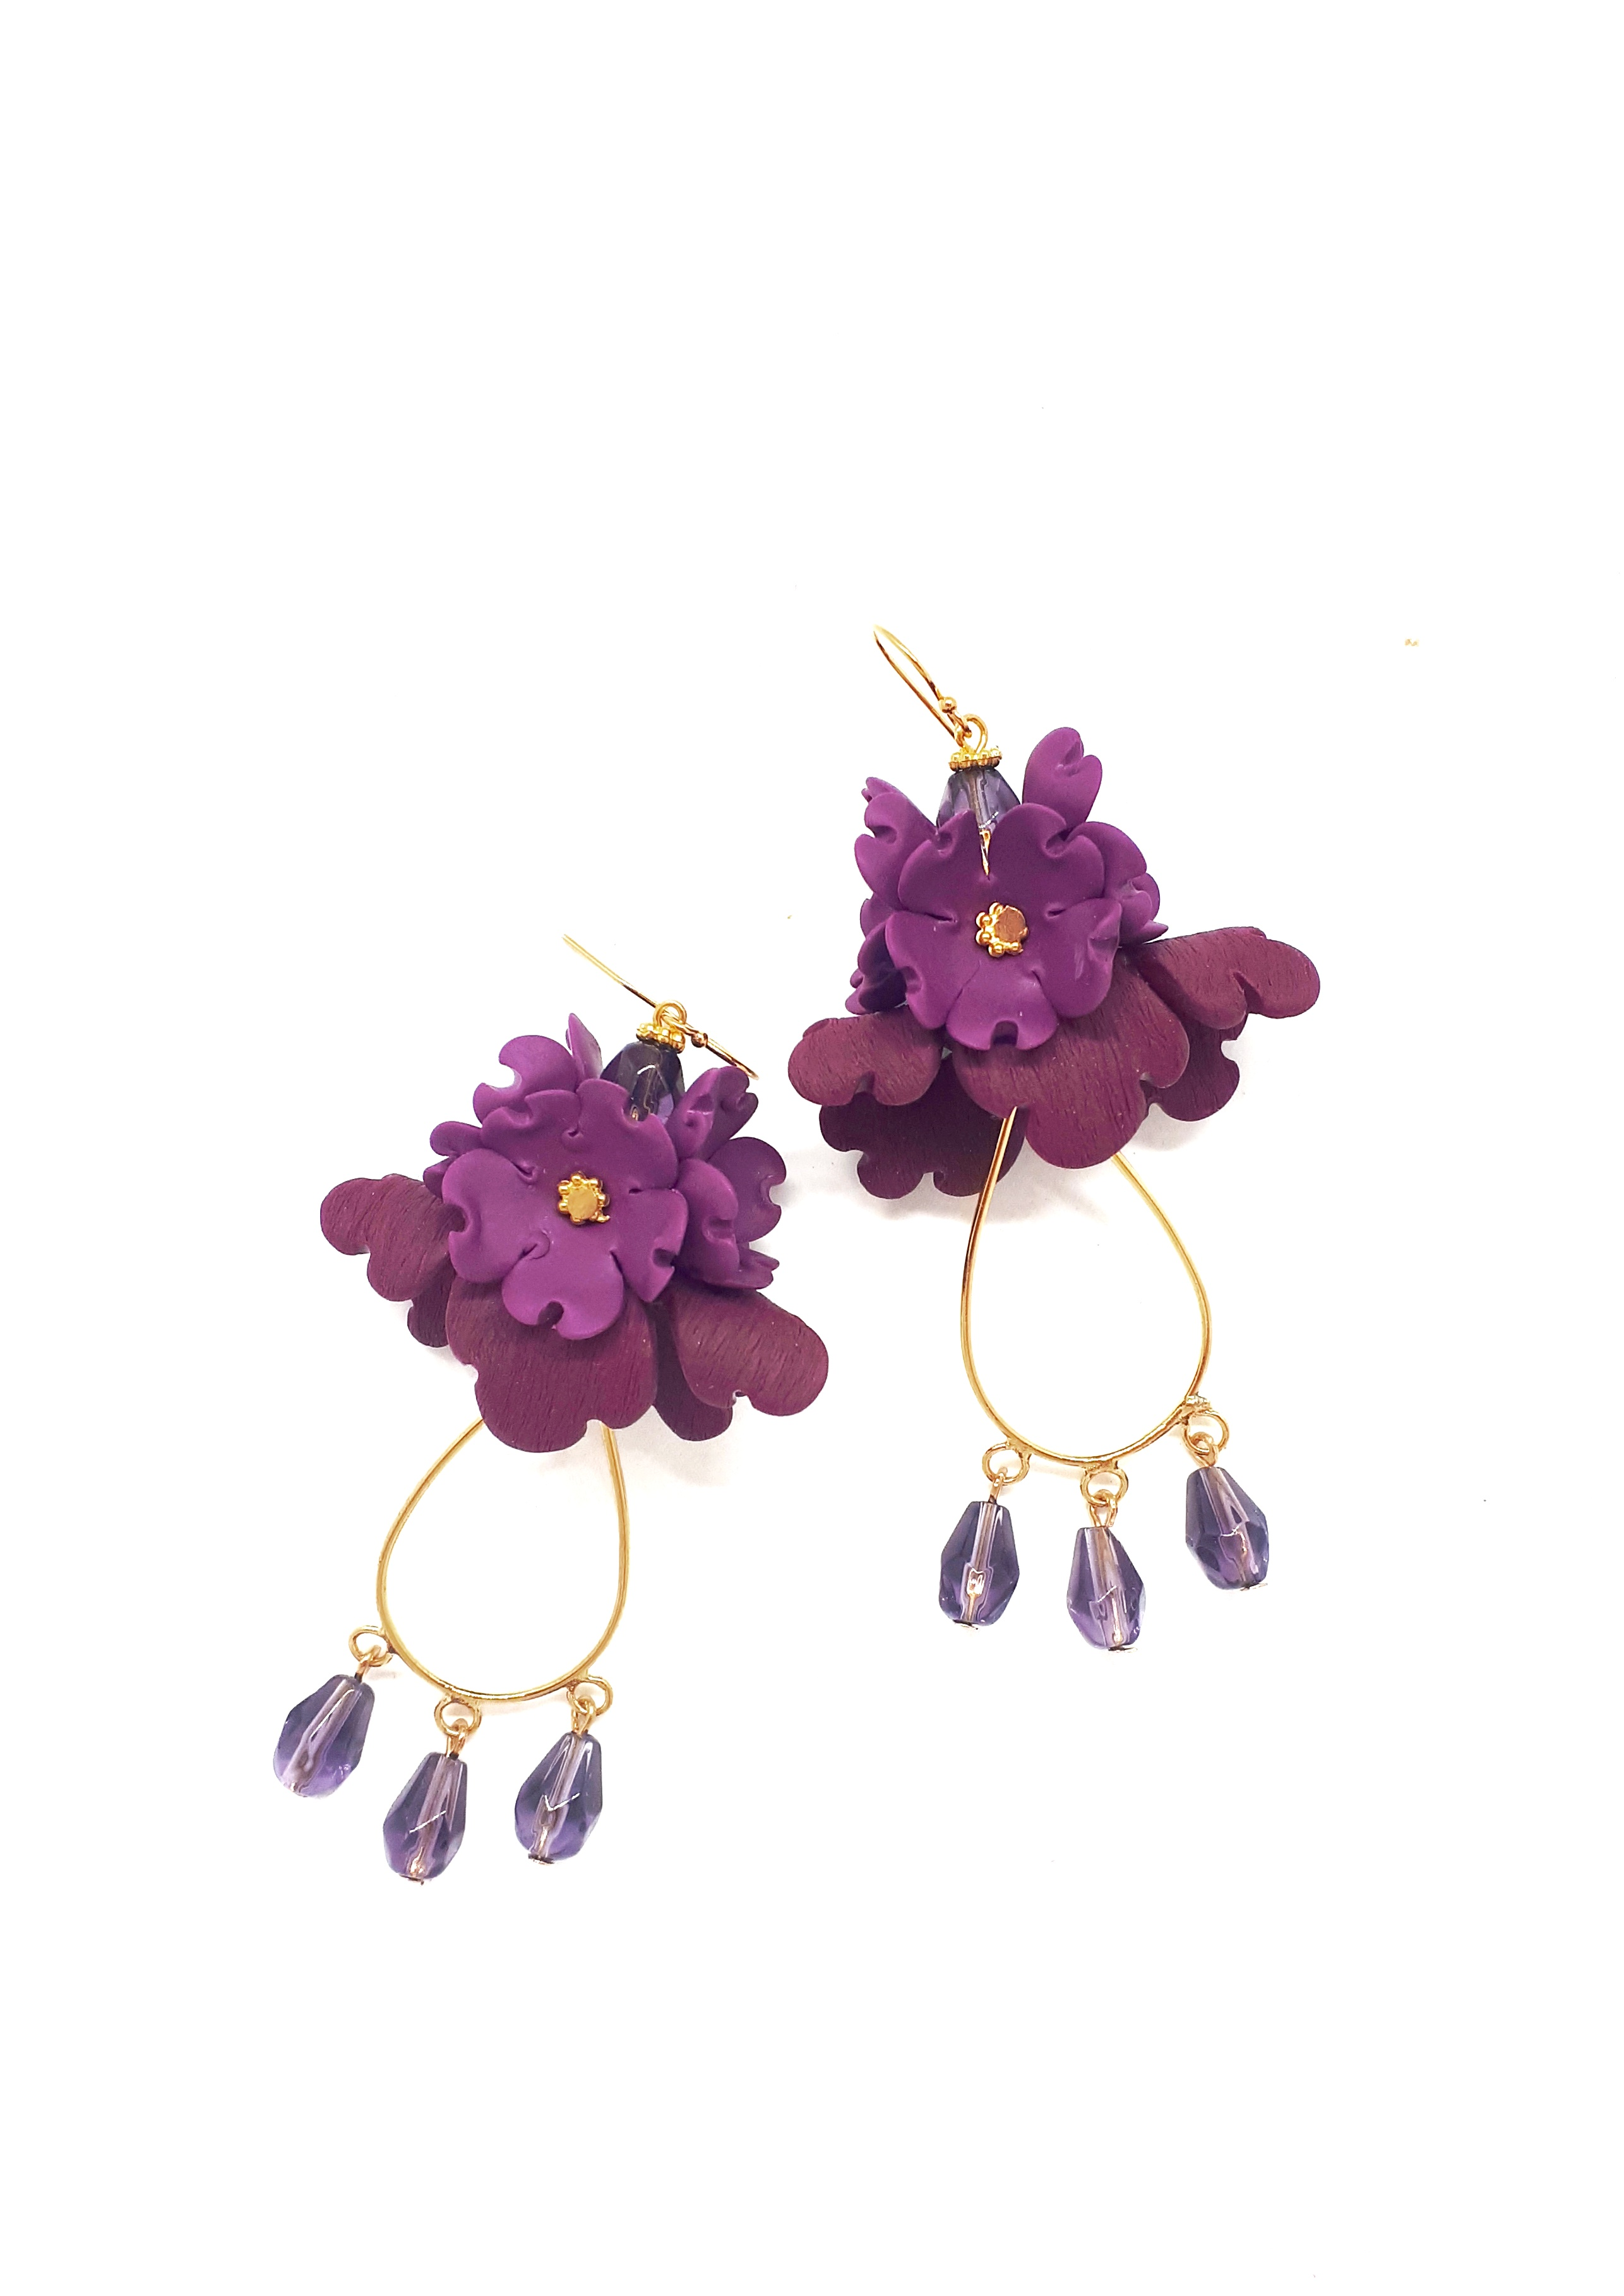 Small folded flower earrings; gold hardw